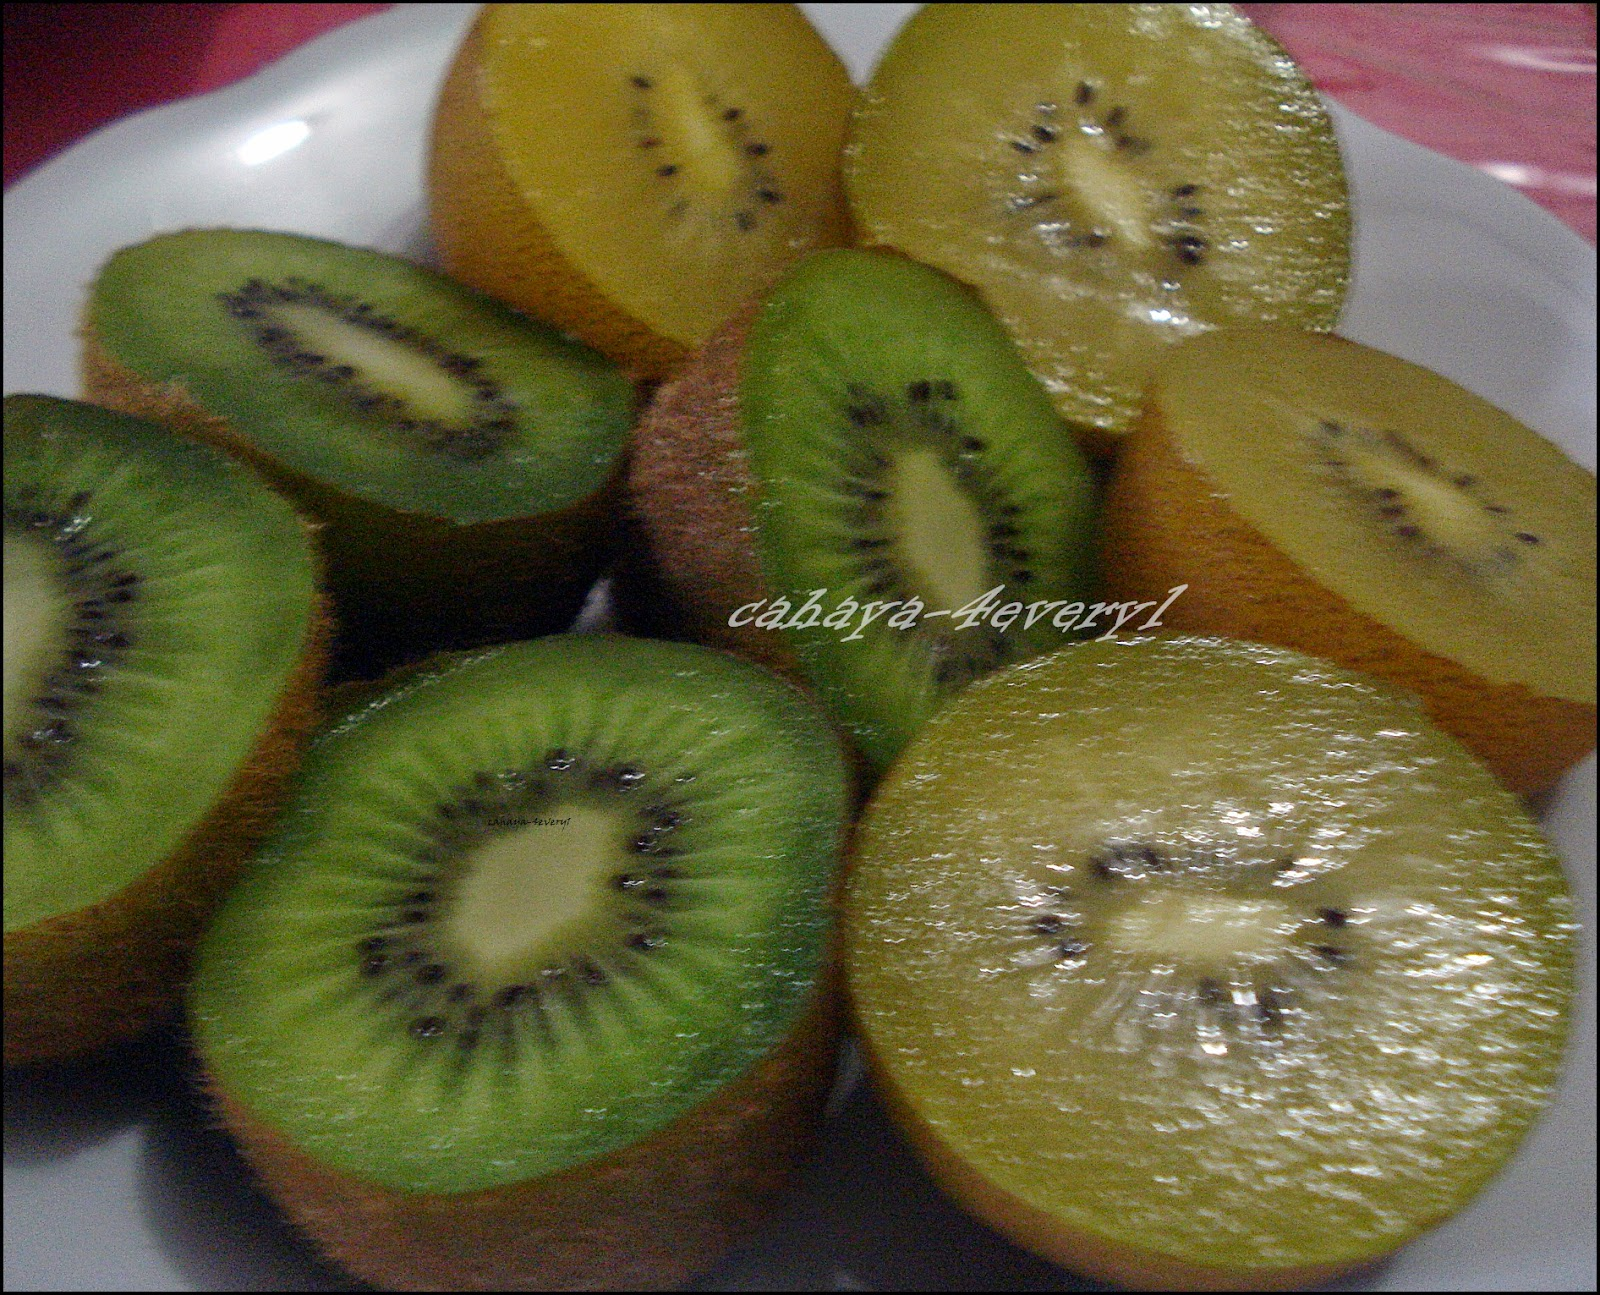 sweet kiwi fruit